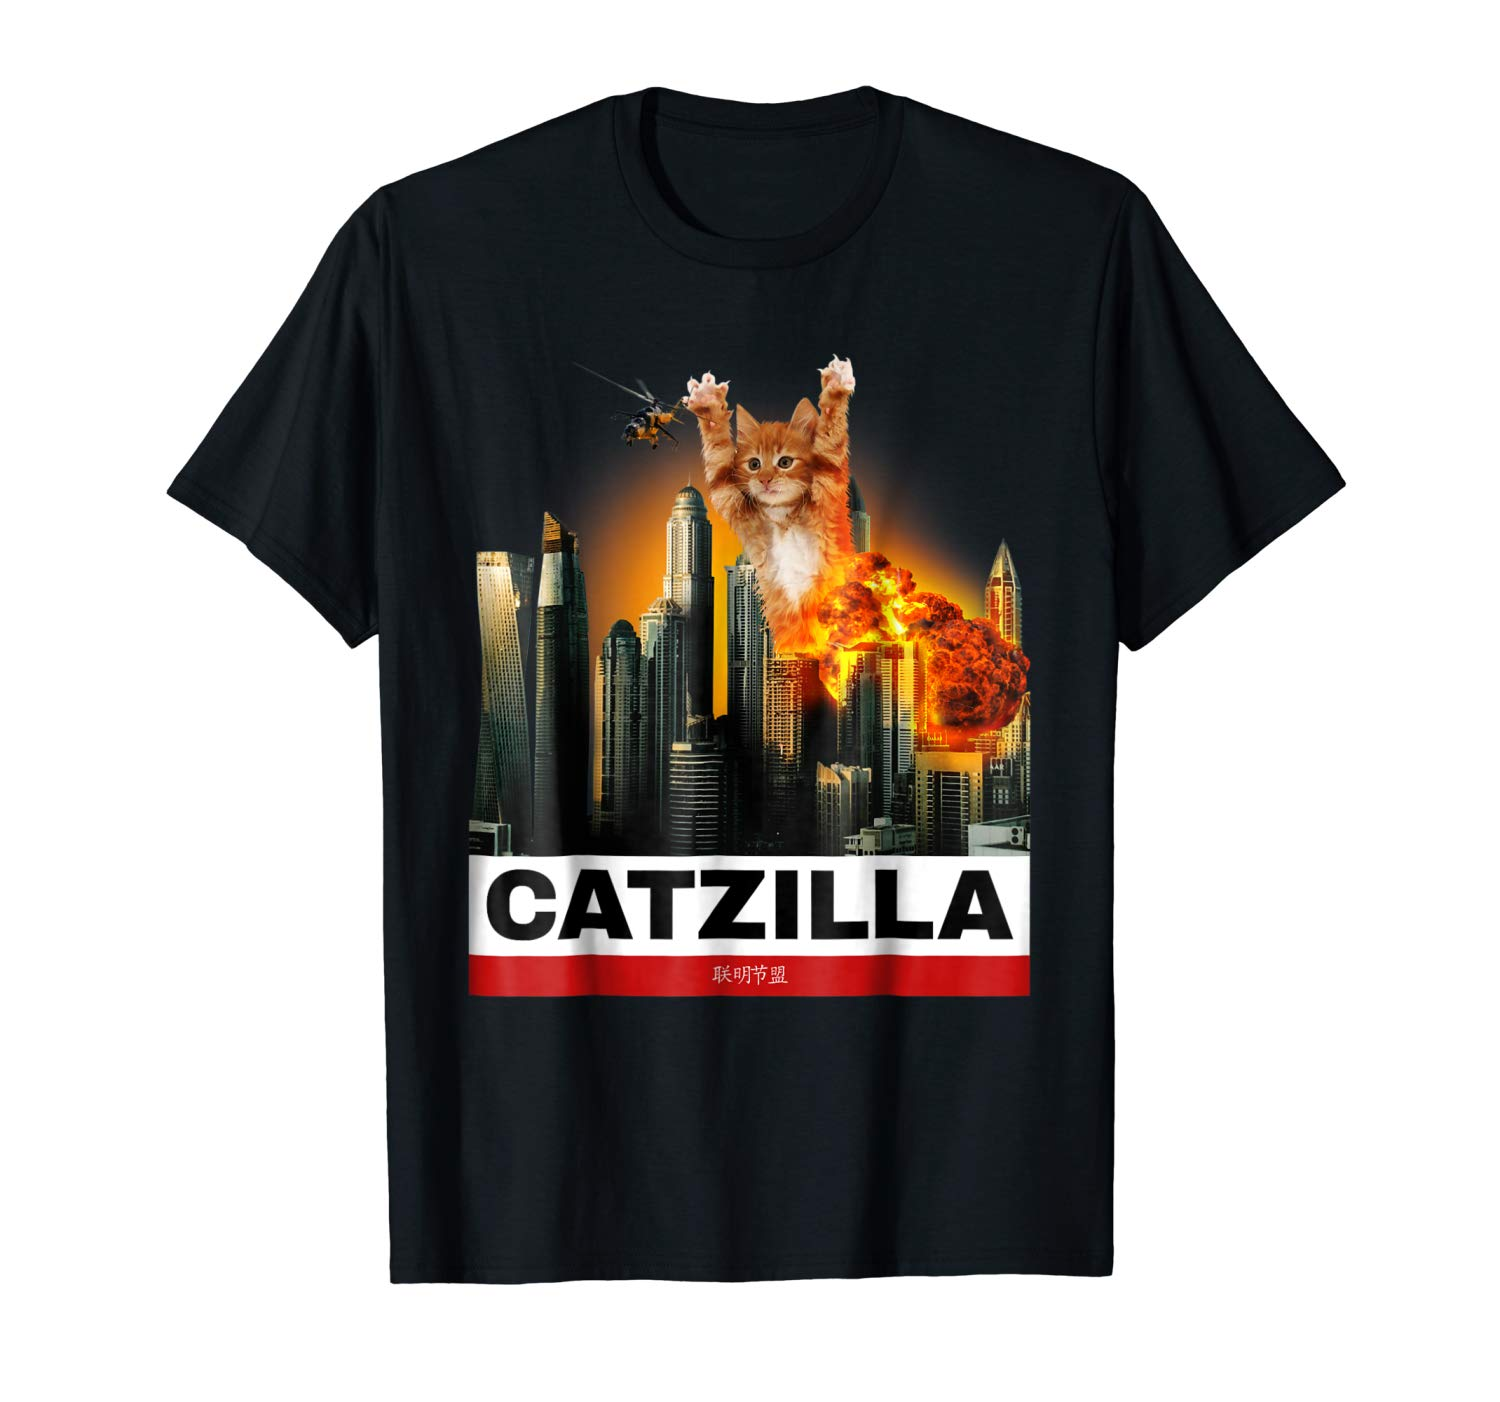 Catzilla Funny Kitty Tshirt For Cat Lovers To Halloween